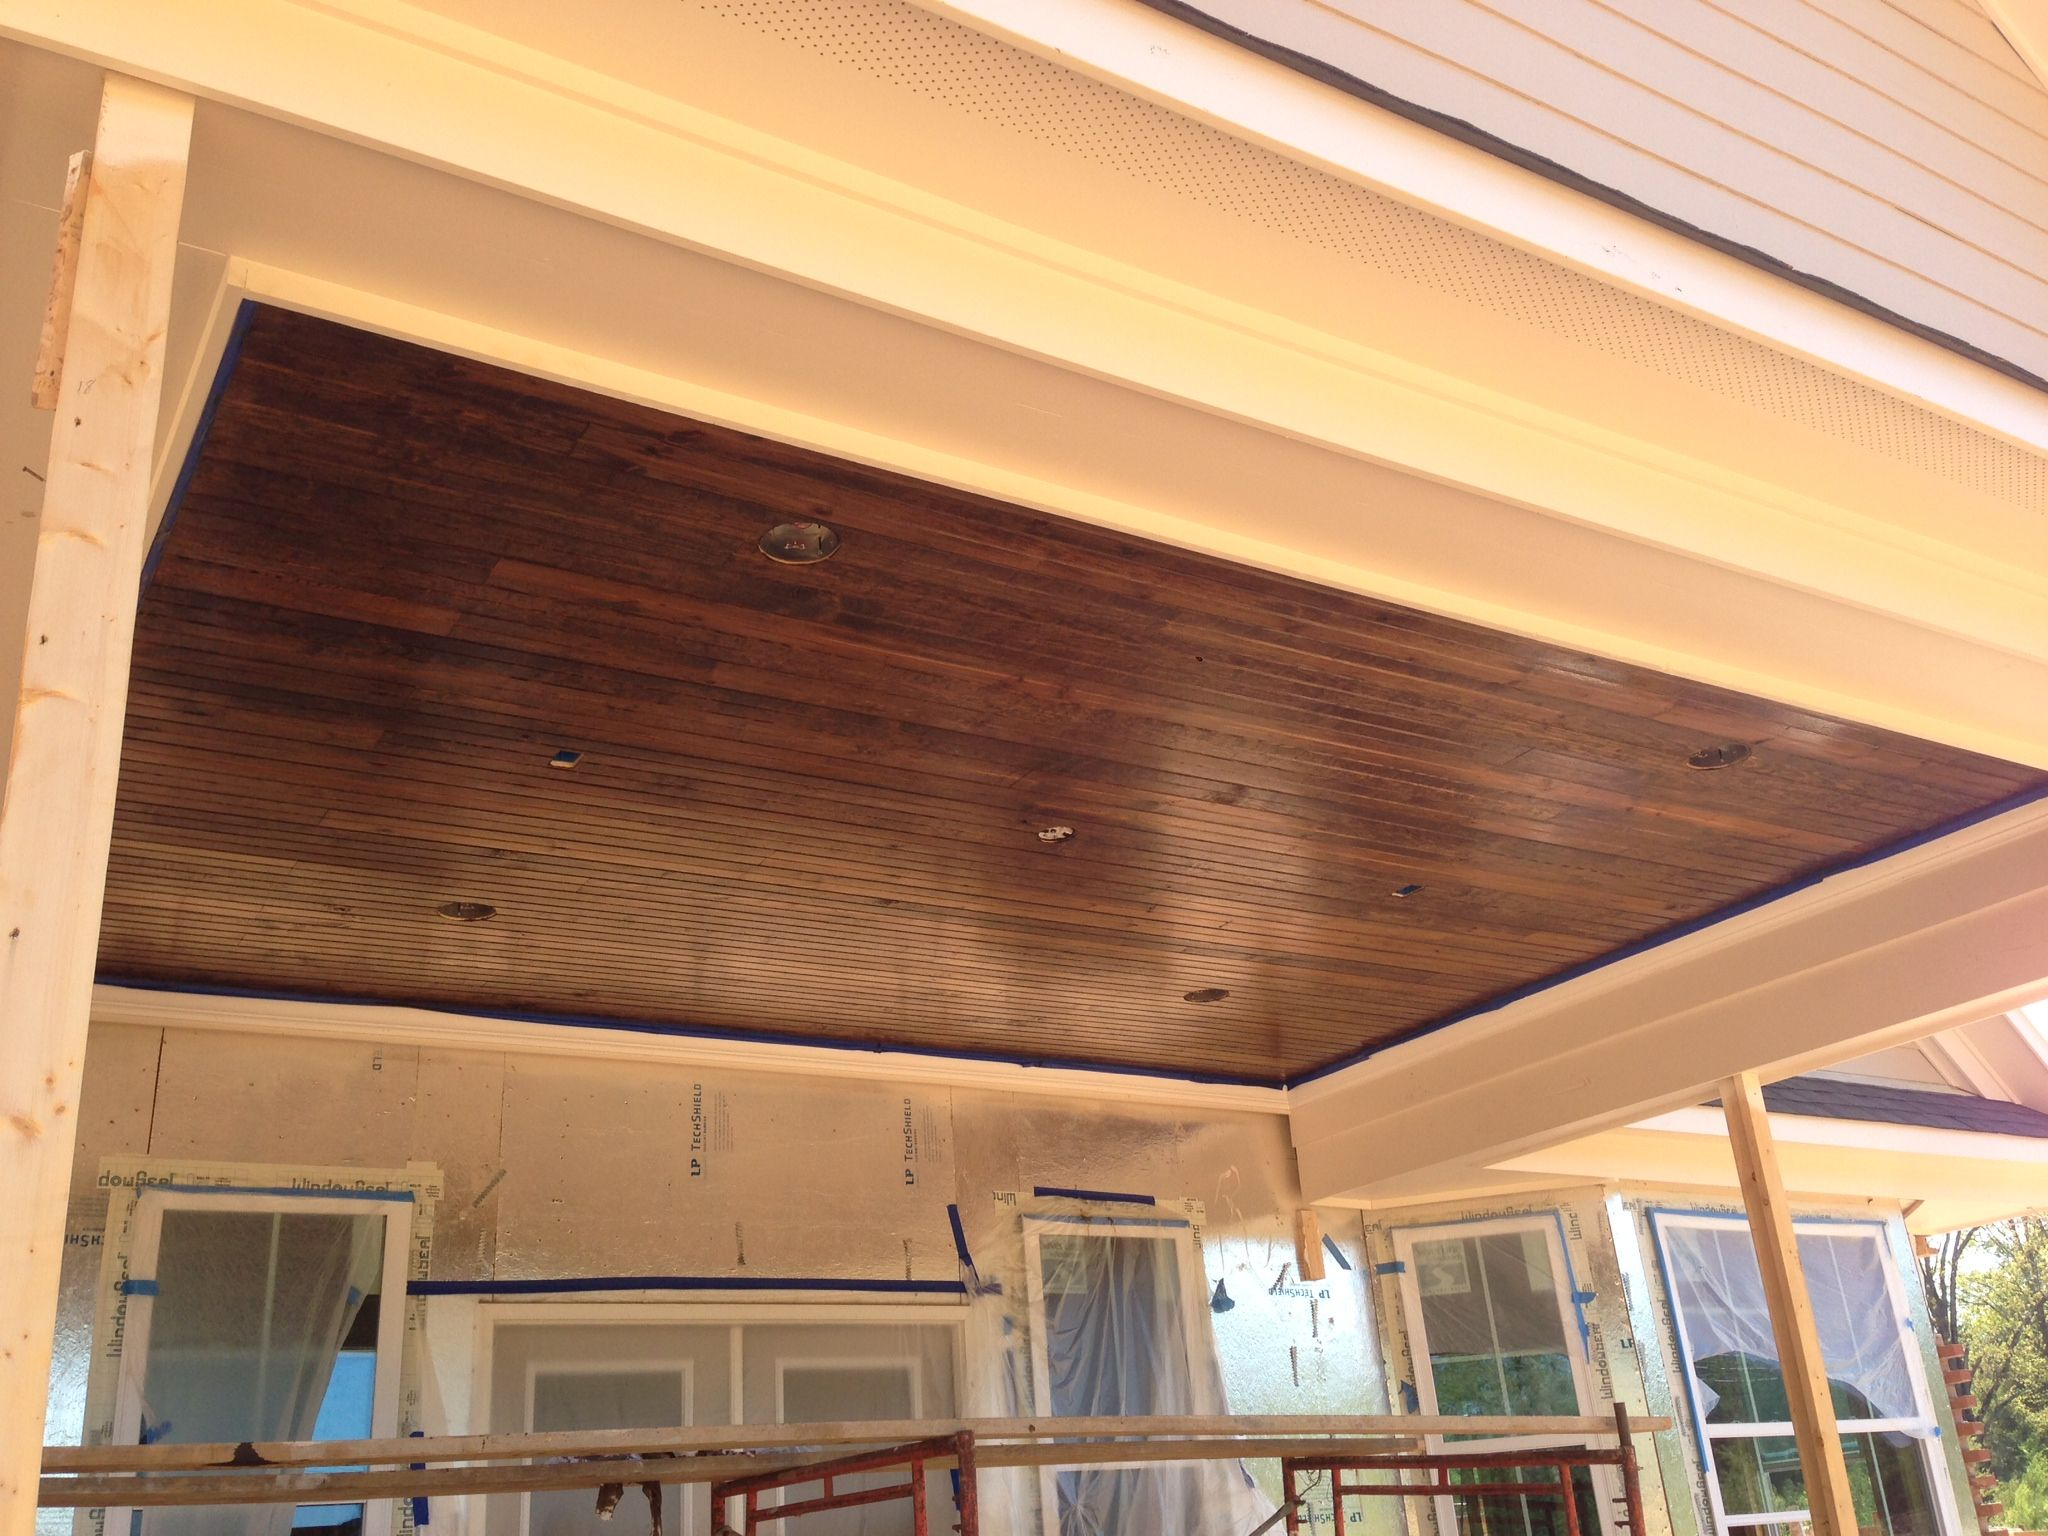 our patio ceiling tongue groove wood with a dark stain love it - Patio Ceiling Ideas